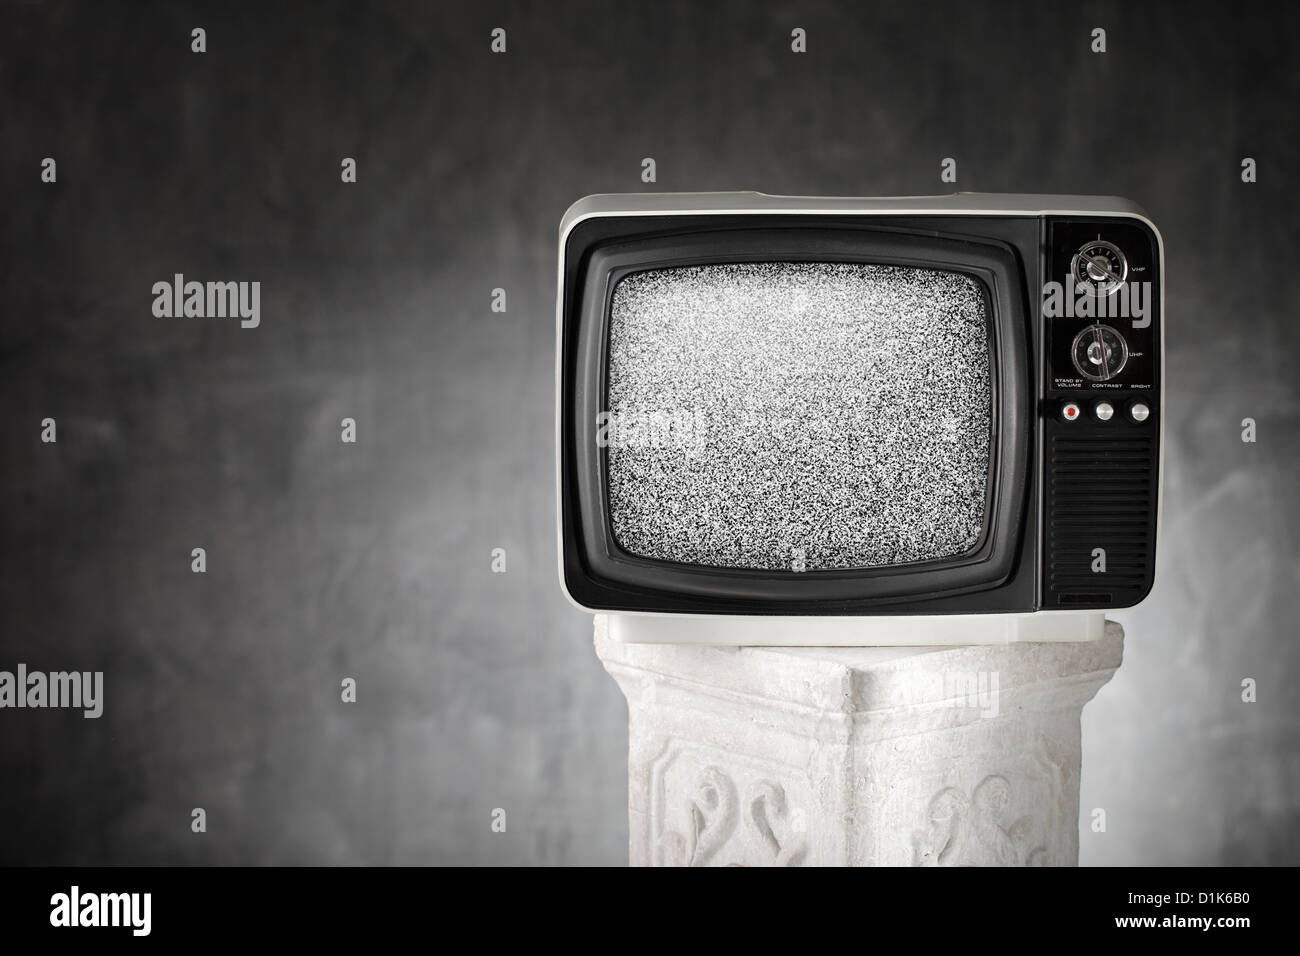 Old portable television with static noise. - Stock Image